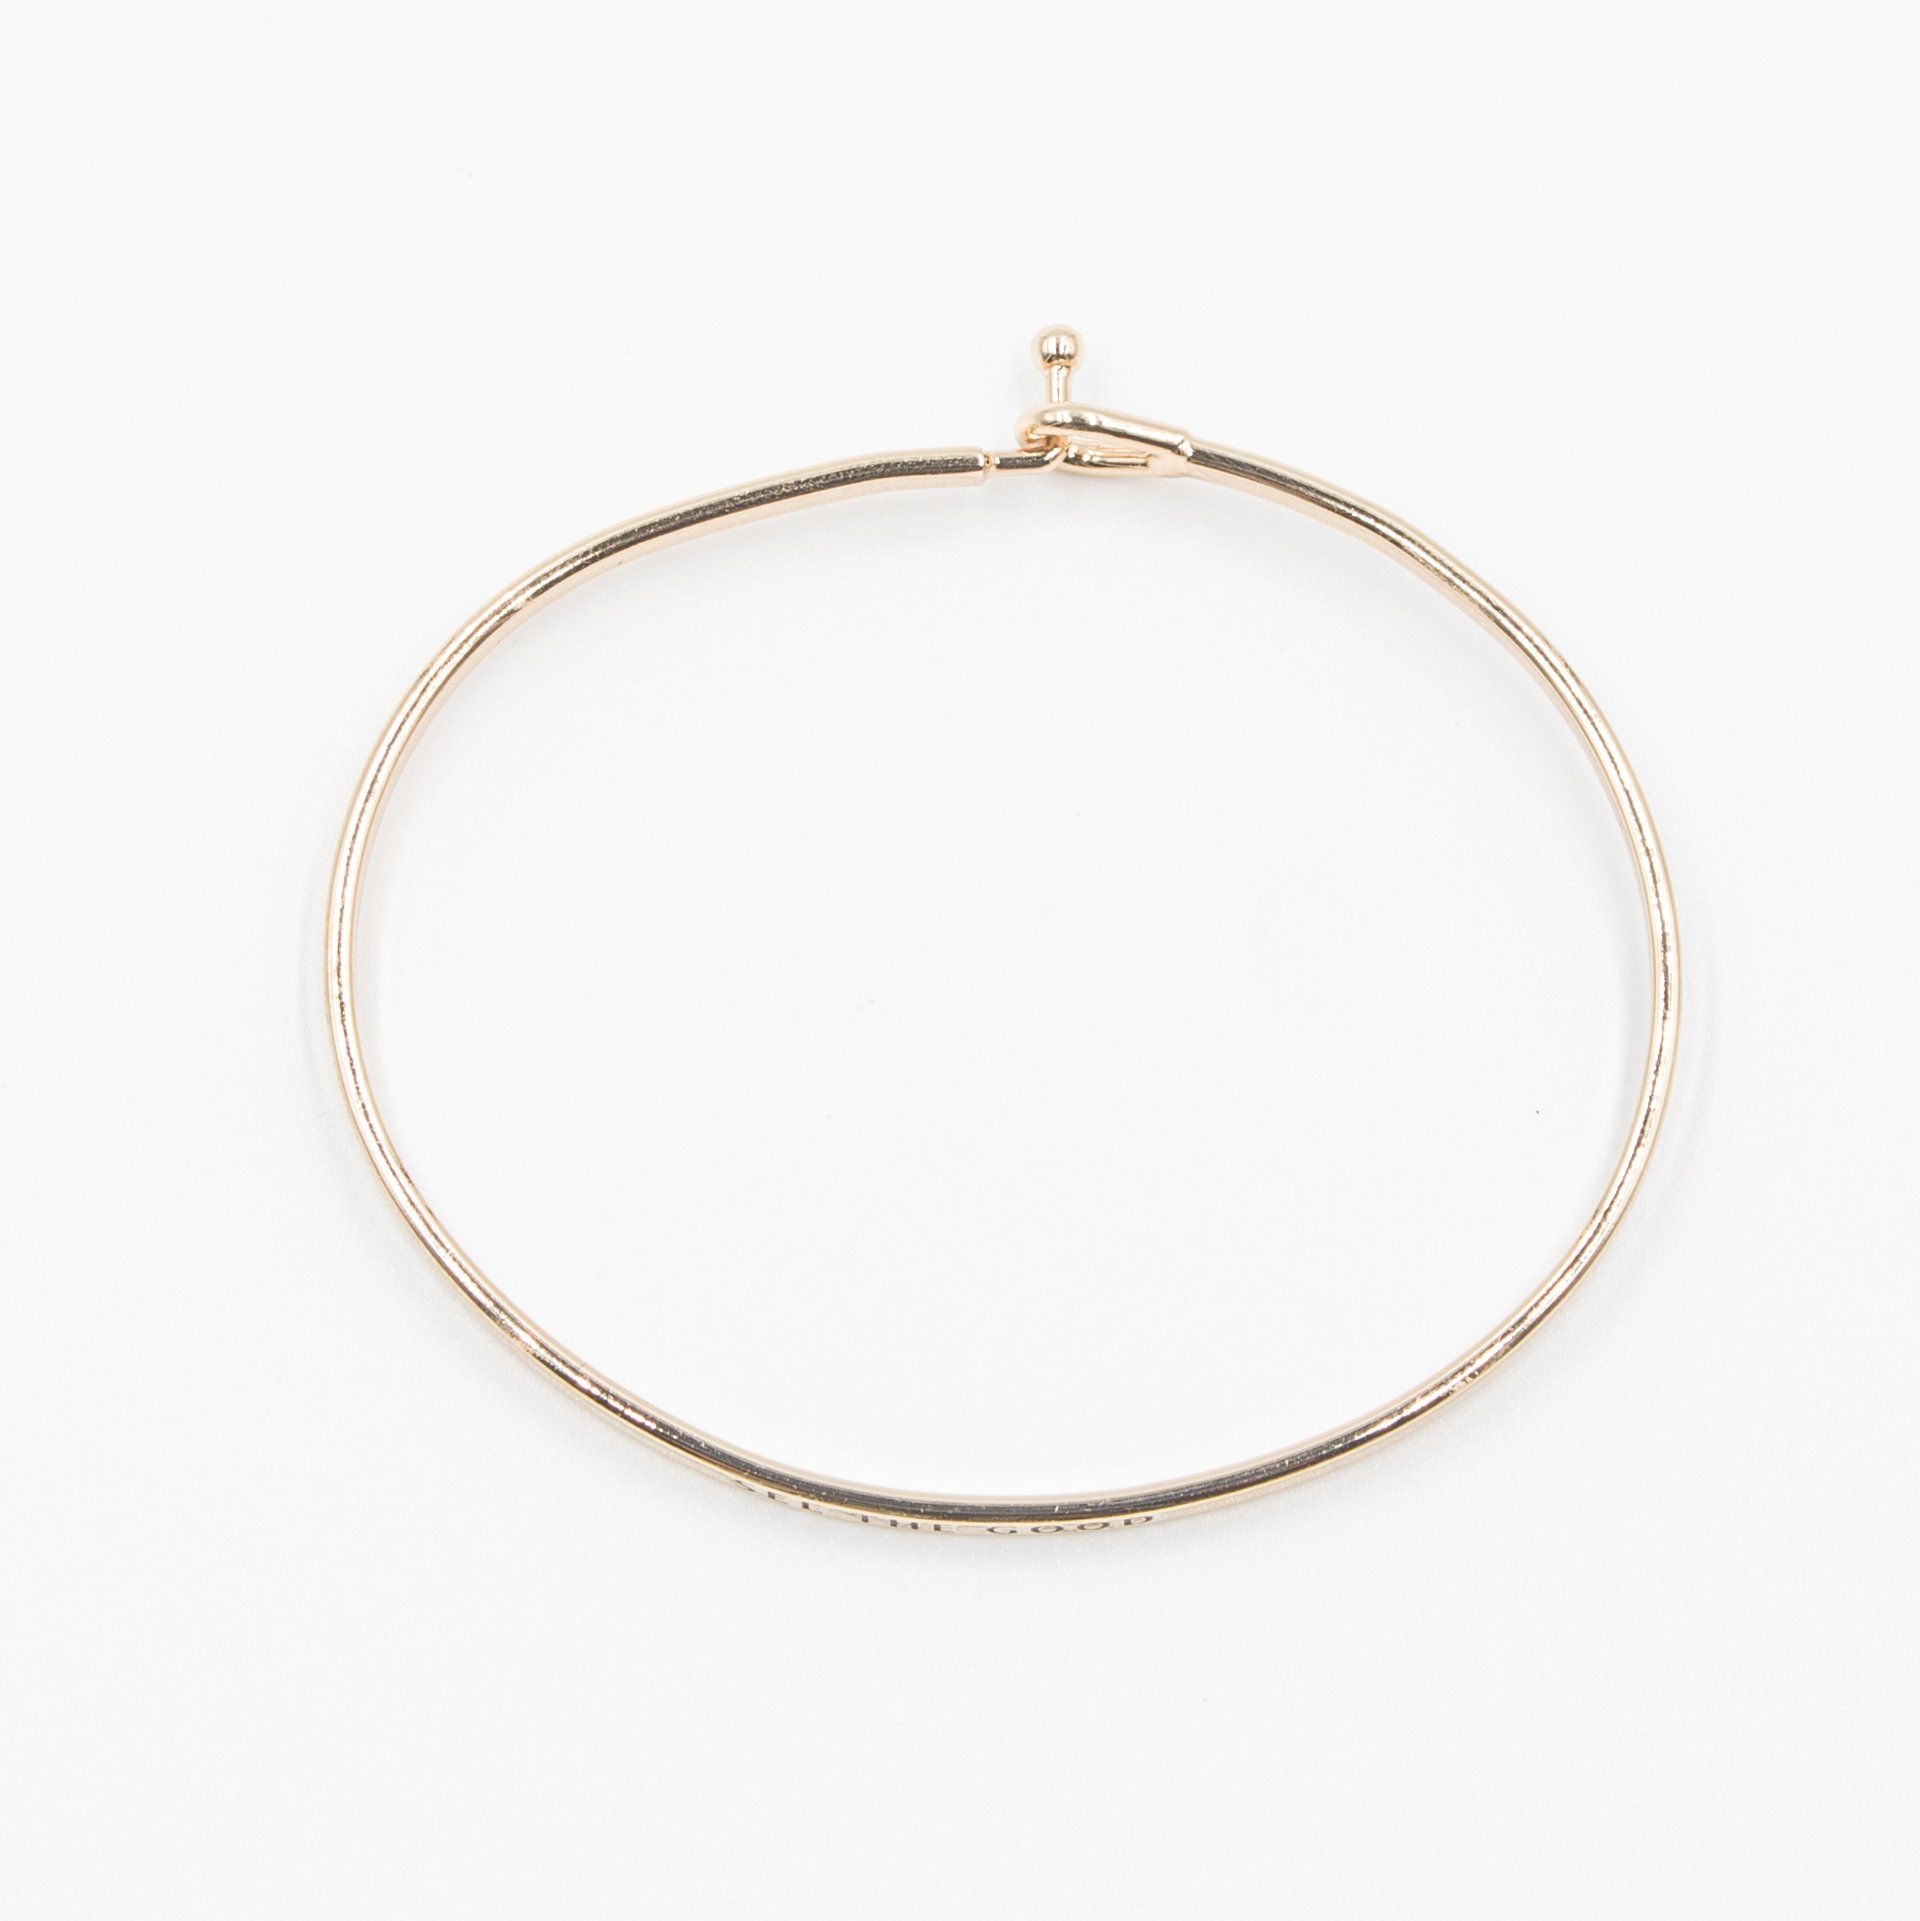 'See The Good' Bracelet - Arlo and Arrows